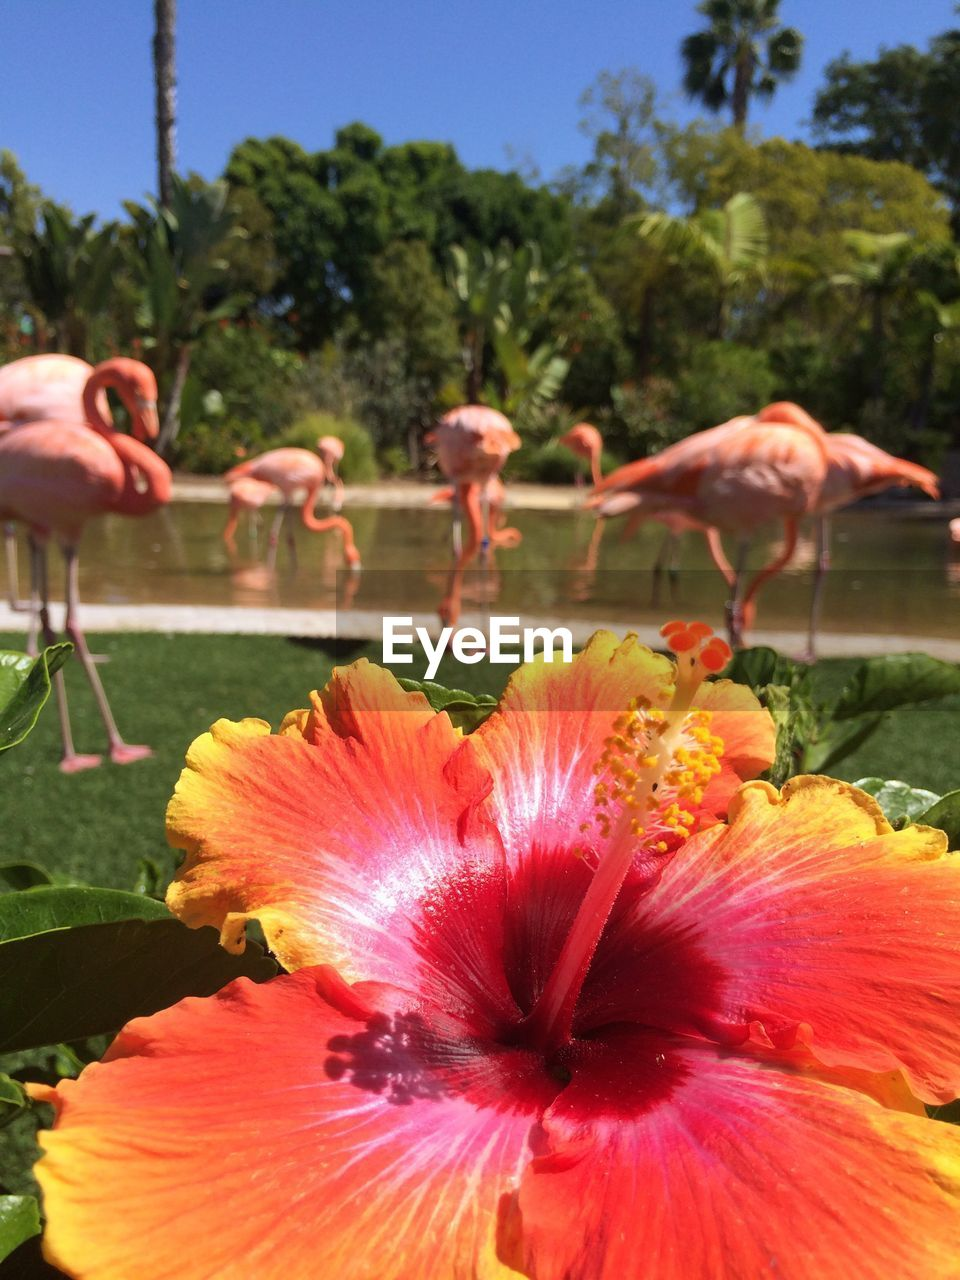 flower, nature, beauty in nature, plant, growth, outdoors, petal, pink color, day, flamingo, animal themes, flower head, fragility, close-up, no people, bird, freshness, blooming, tree